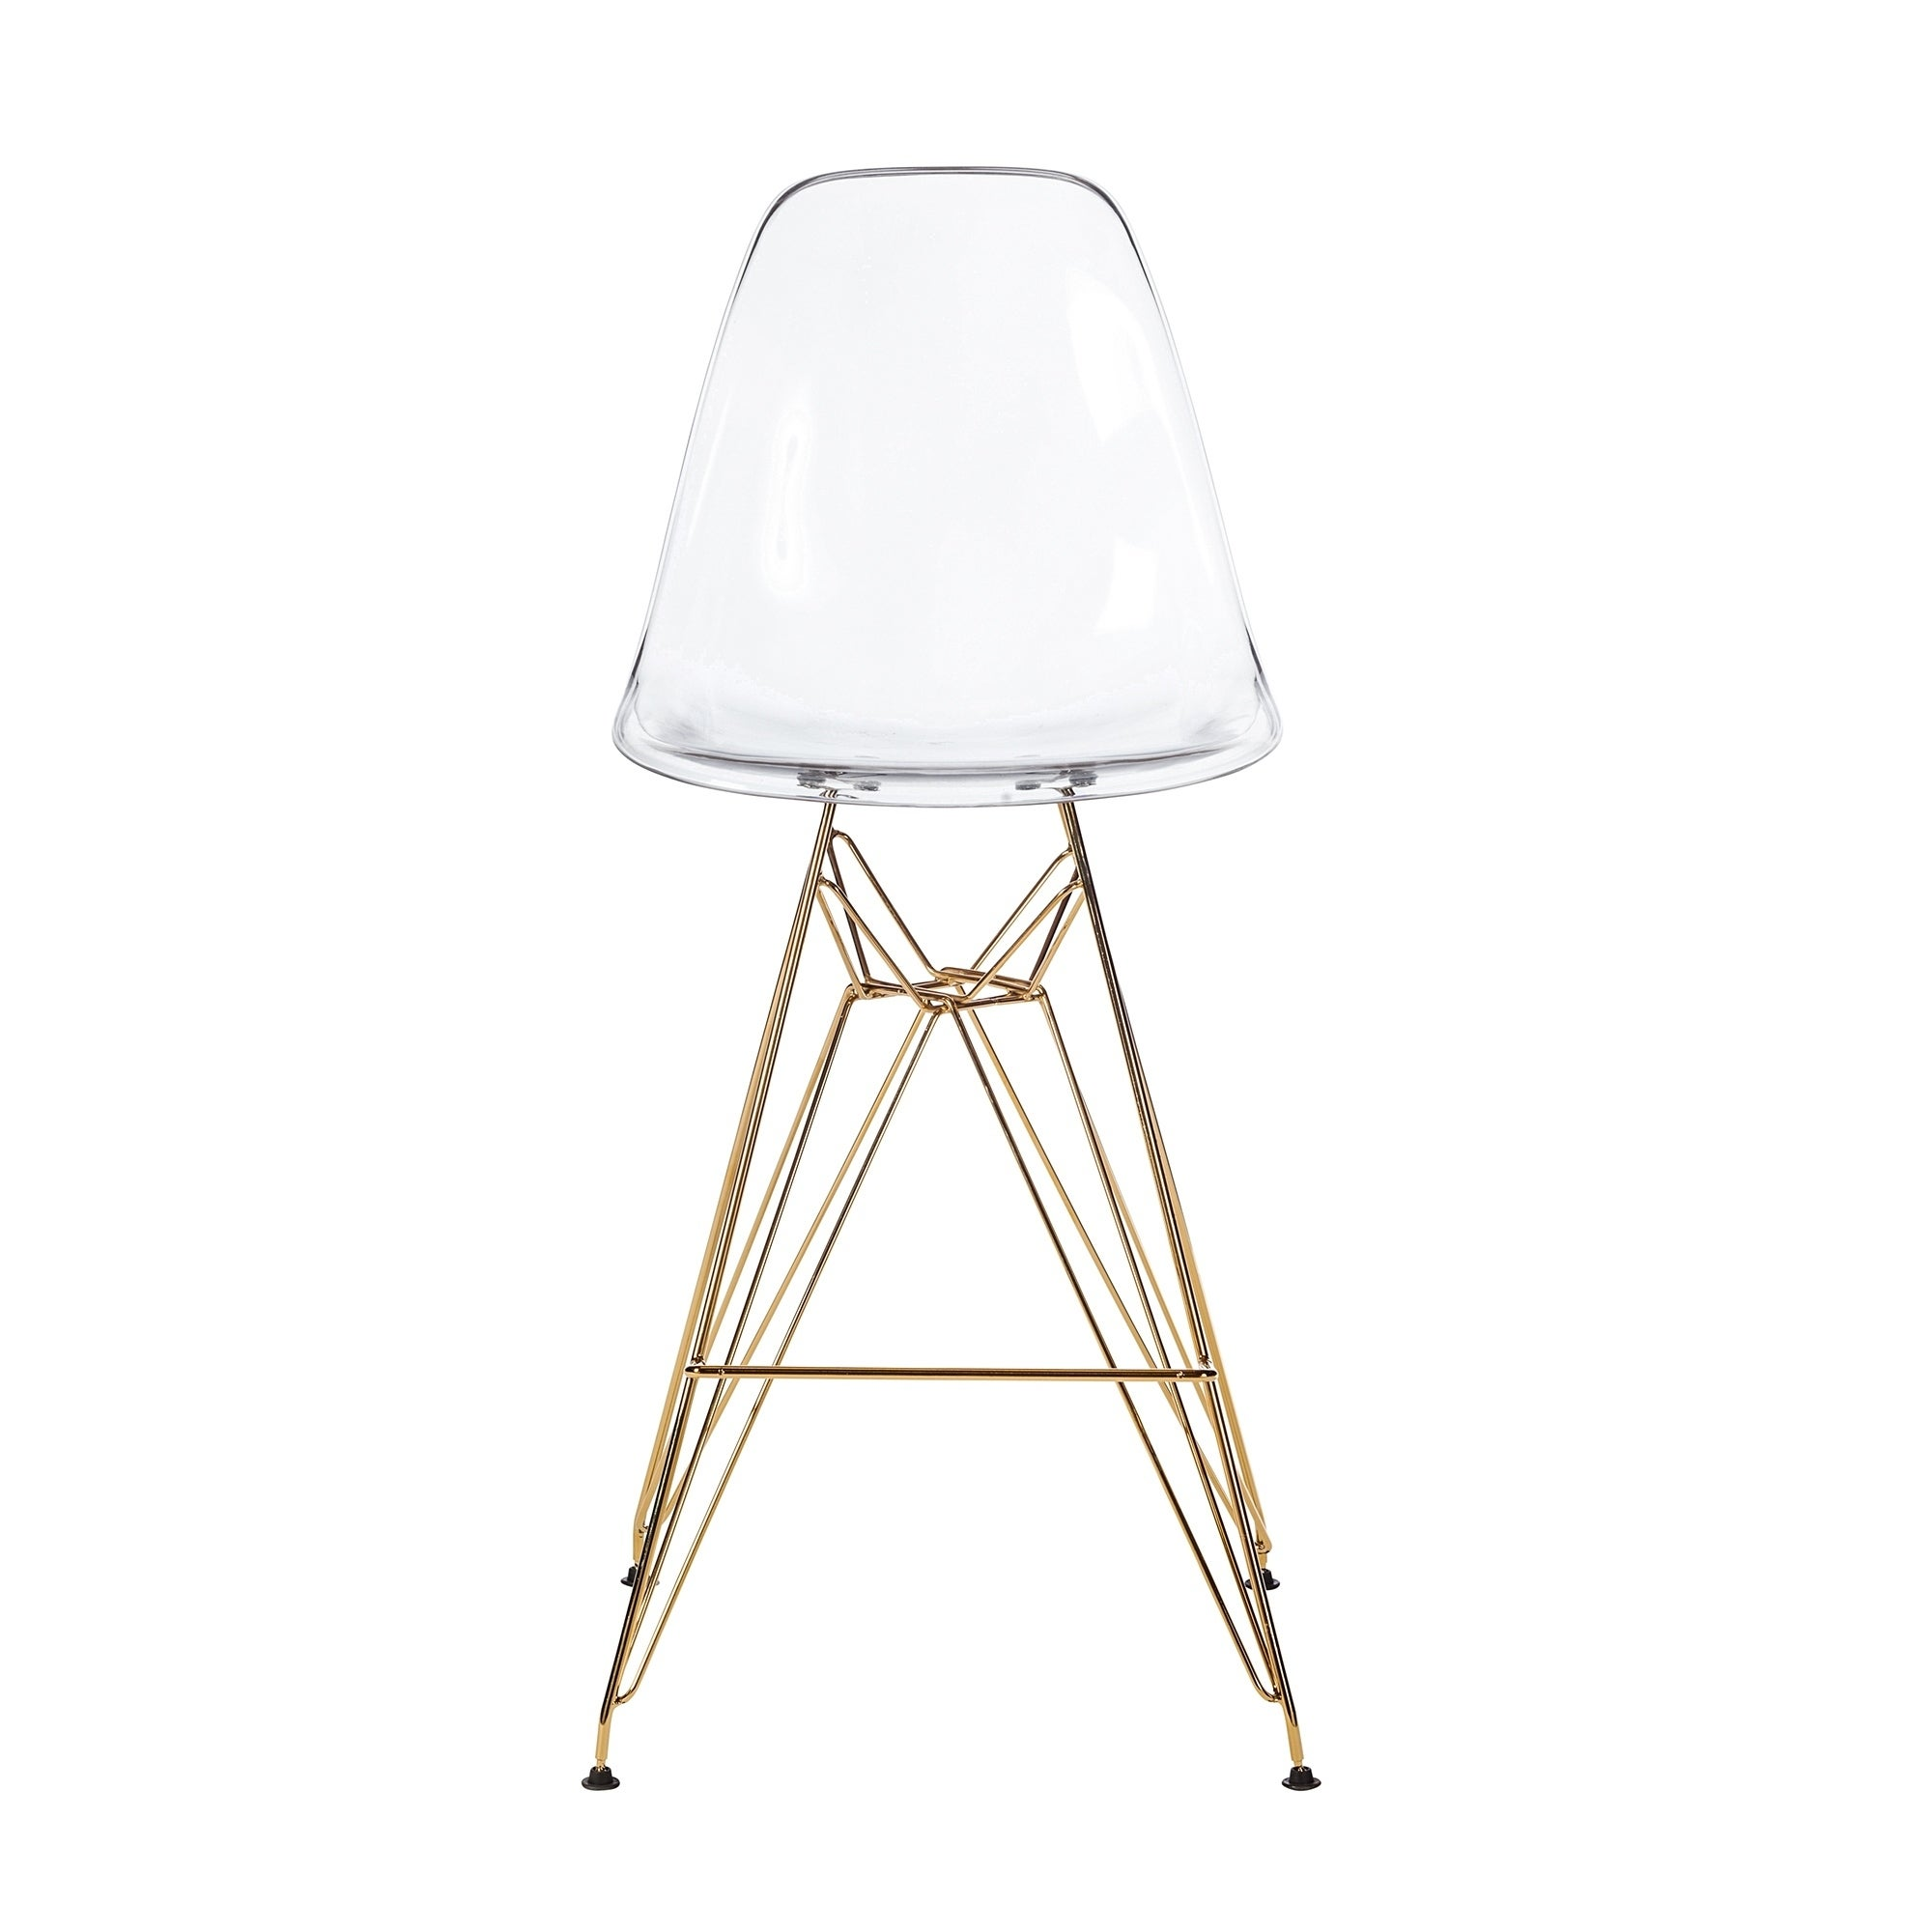 Admirable Molded Acrylic Counter Stool In Clear And Gold Finish Legs N A Inzonedesignstudio Interior Chair Design Inzonedesignstudiocom